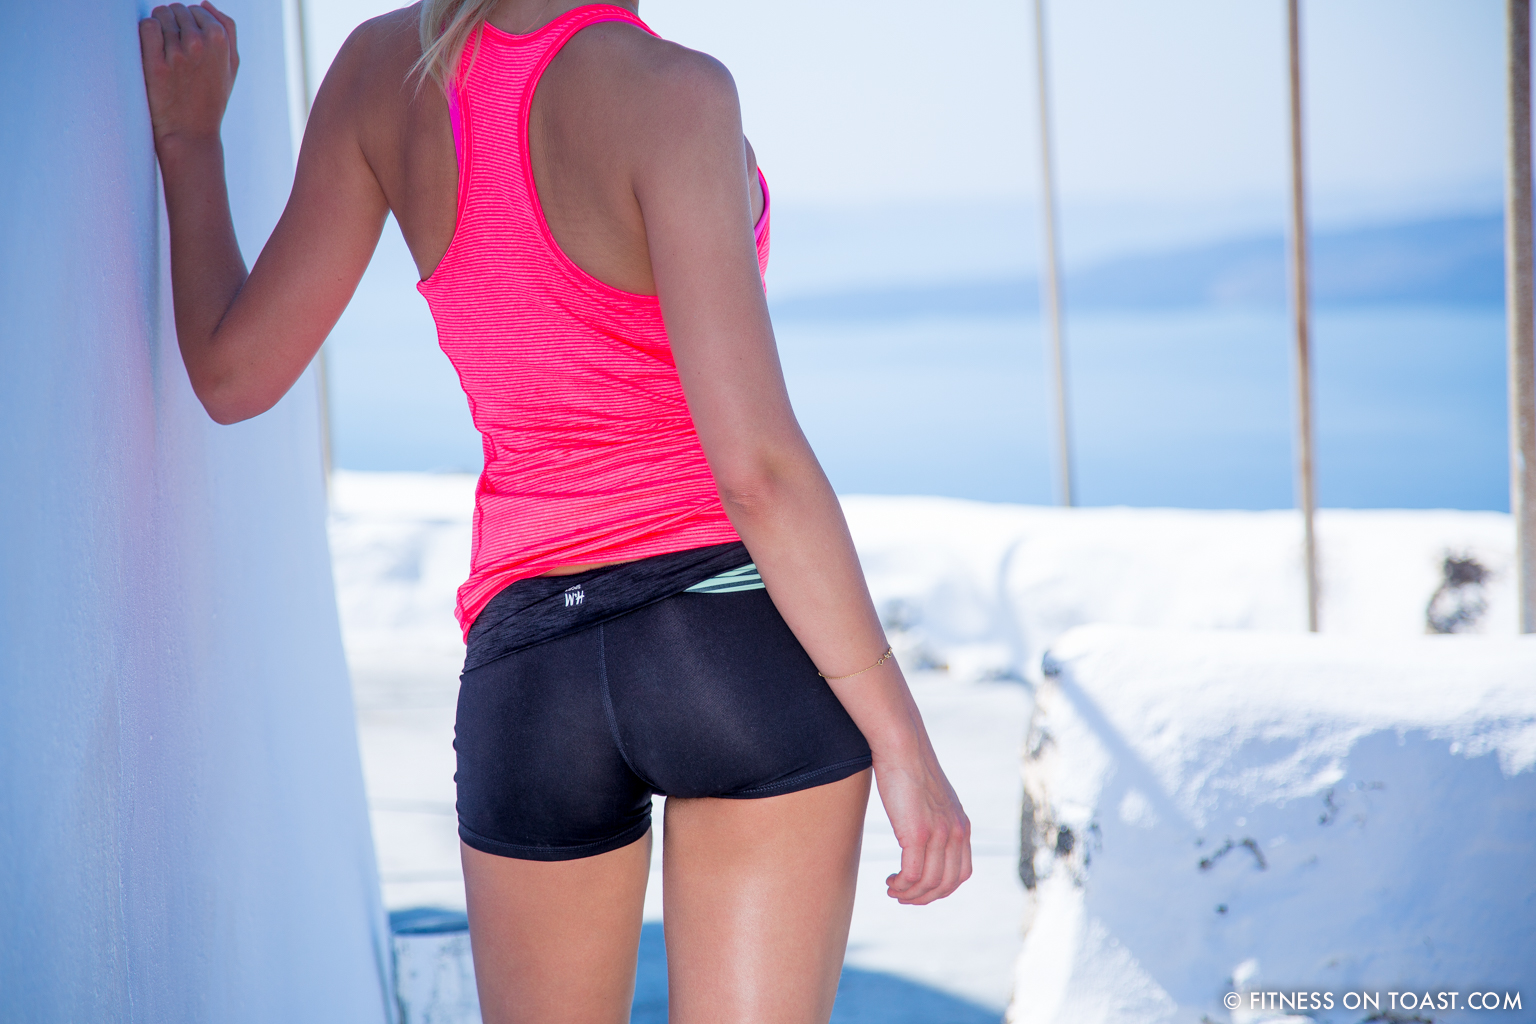 Fitness On Toast Faya Blog Healthy Workout Travel Active Escape H&M Hennes HMSport Fashion Santorini Greece Outfit OOTD-17